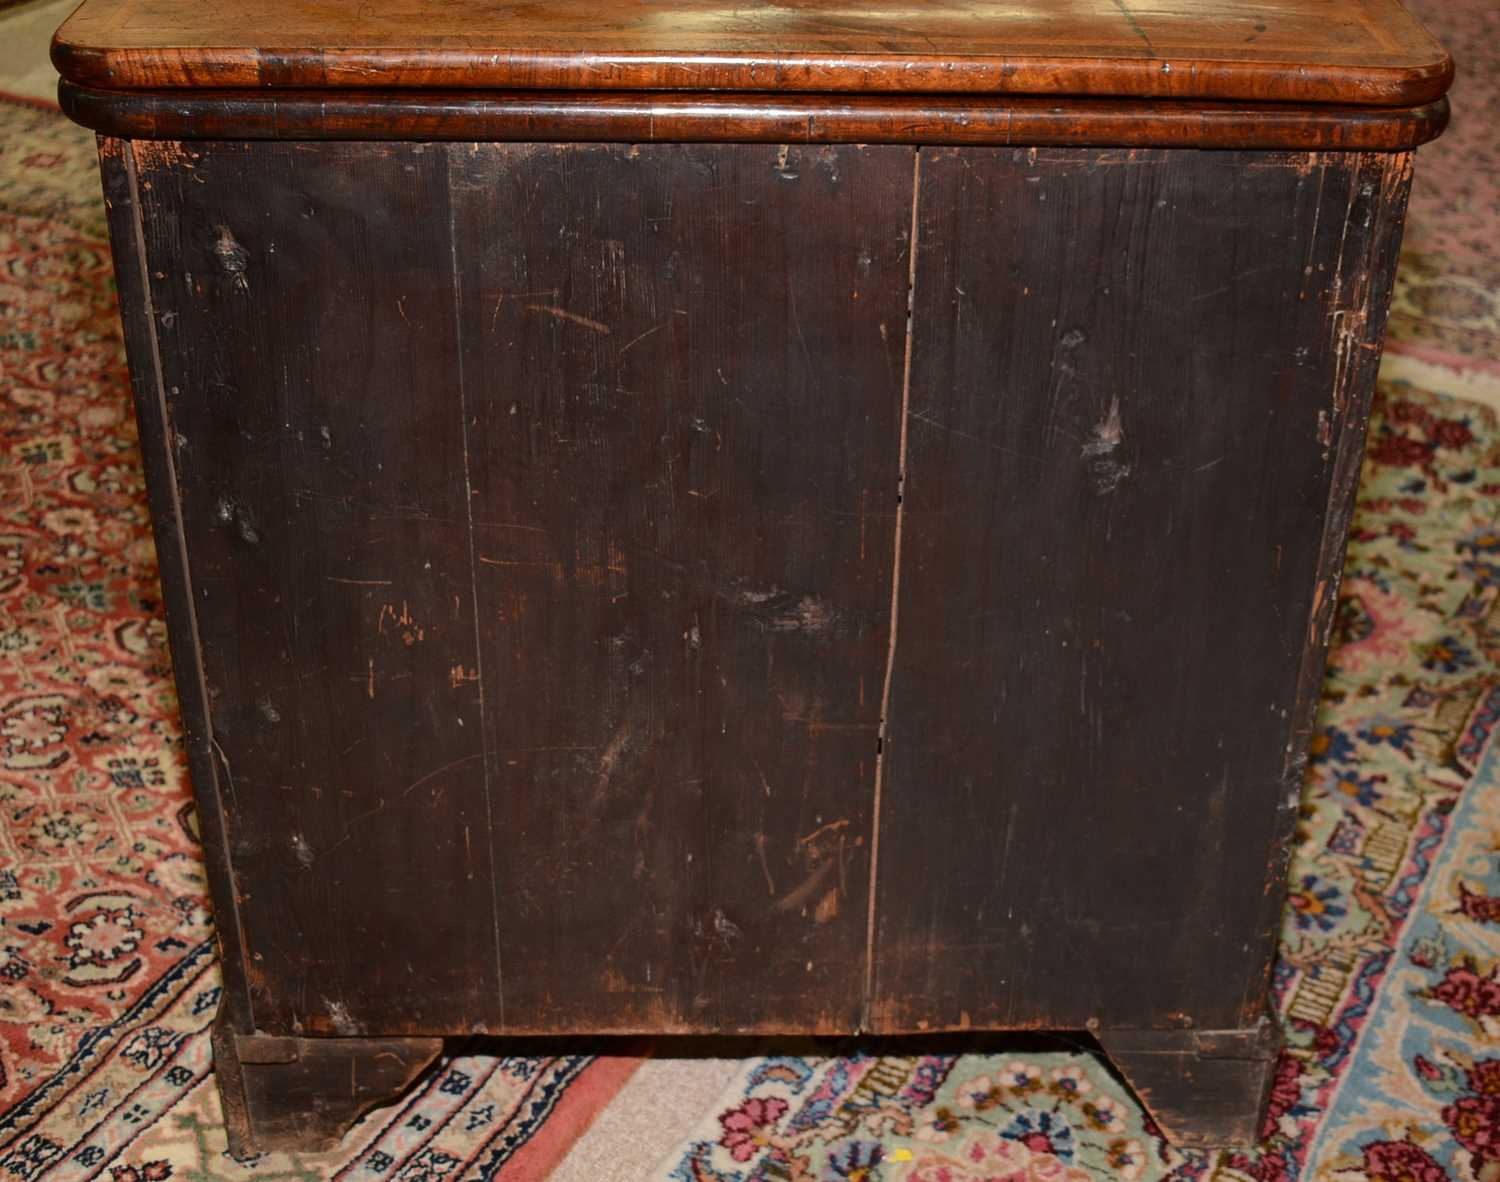 Early 18th Century walnut bachelors chest - Image 12 of 39